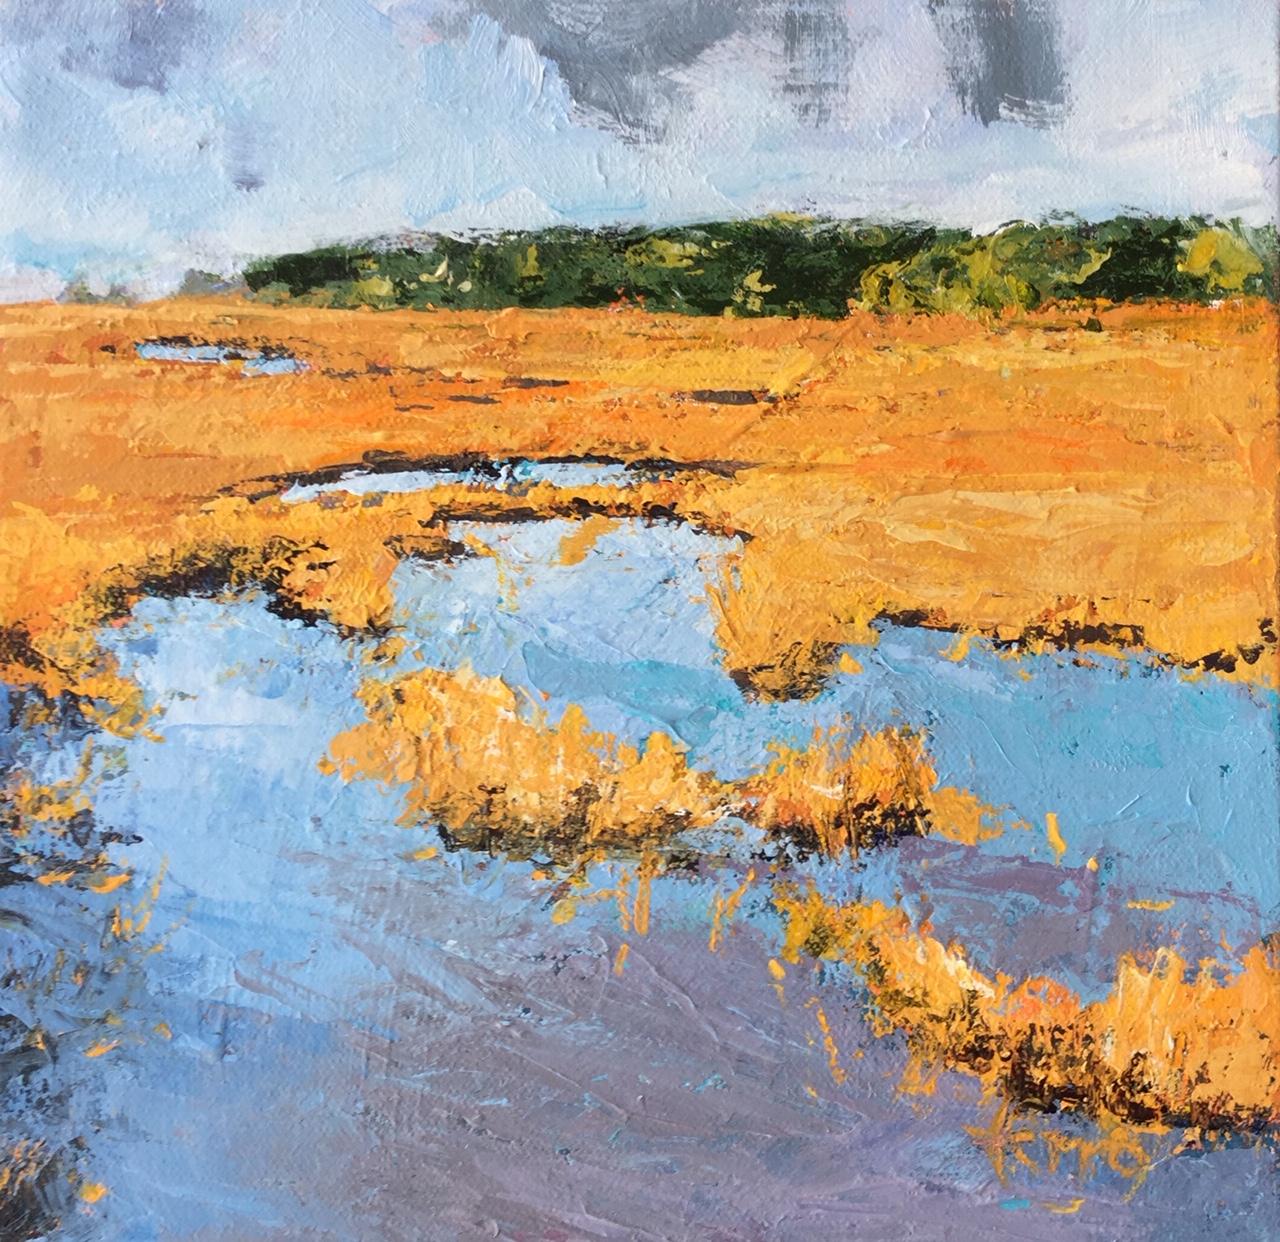 Susan Ferro, maine artist, landscape, small and mighty, quiet marsh